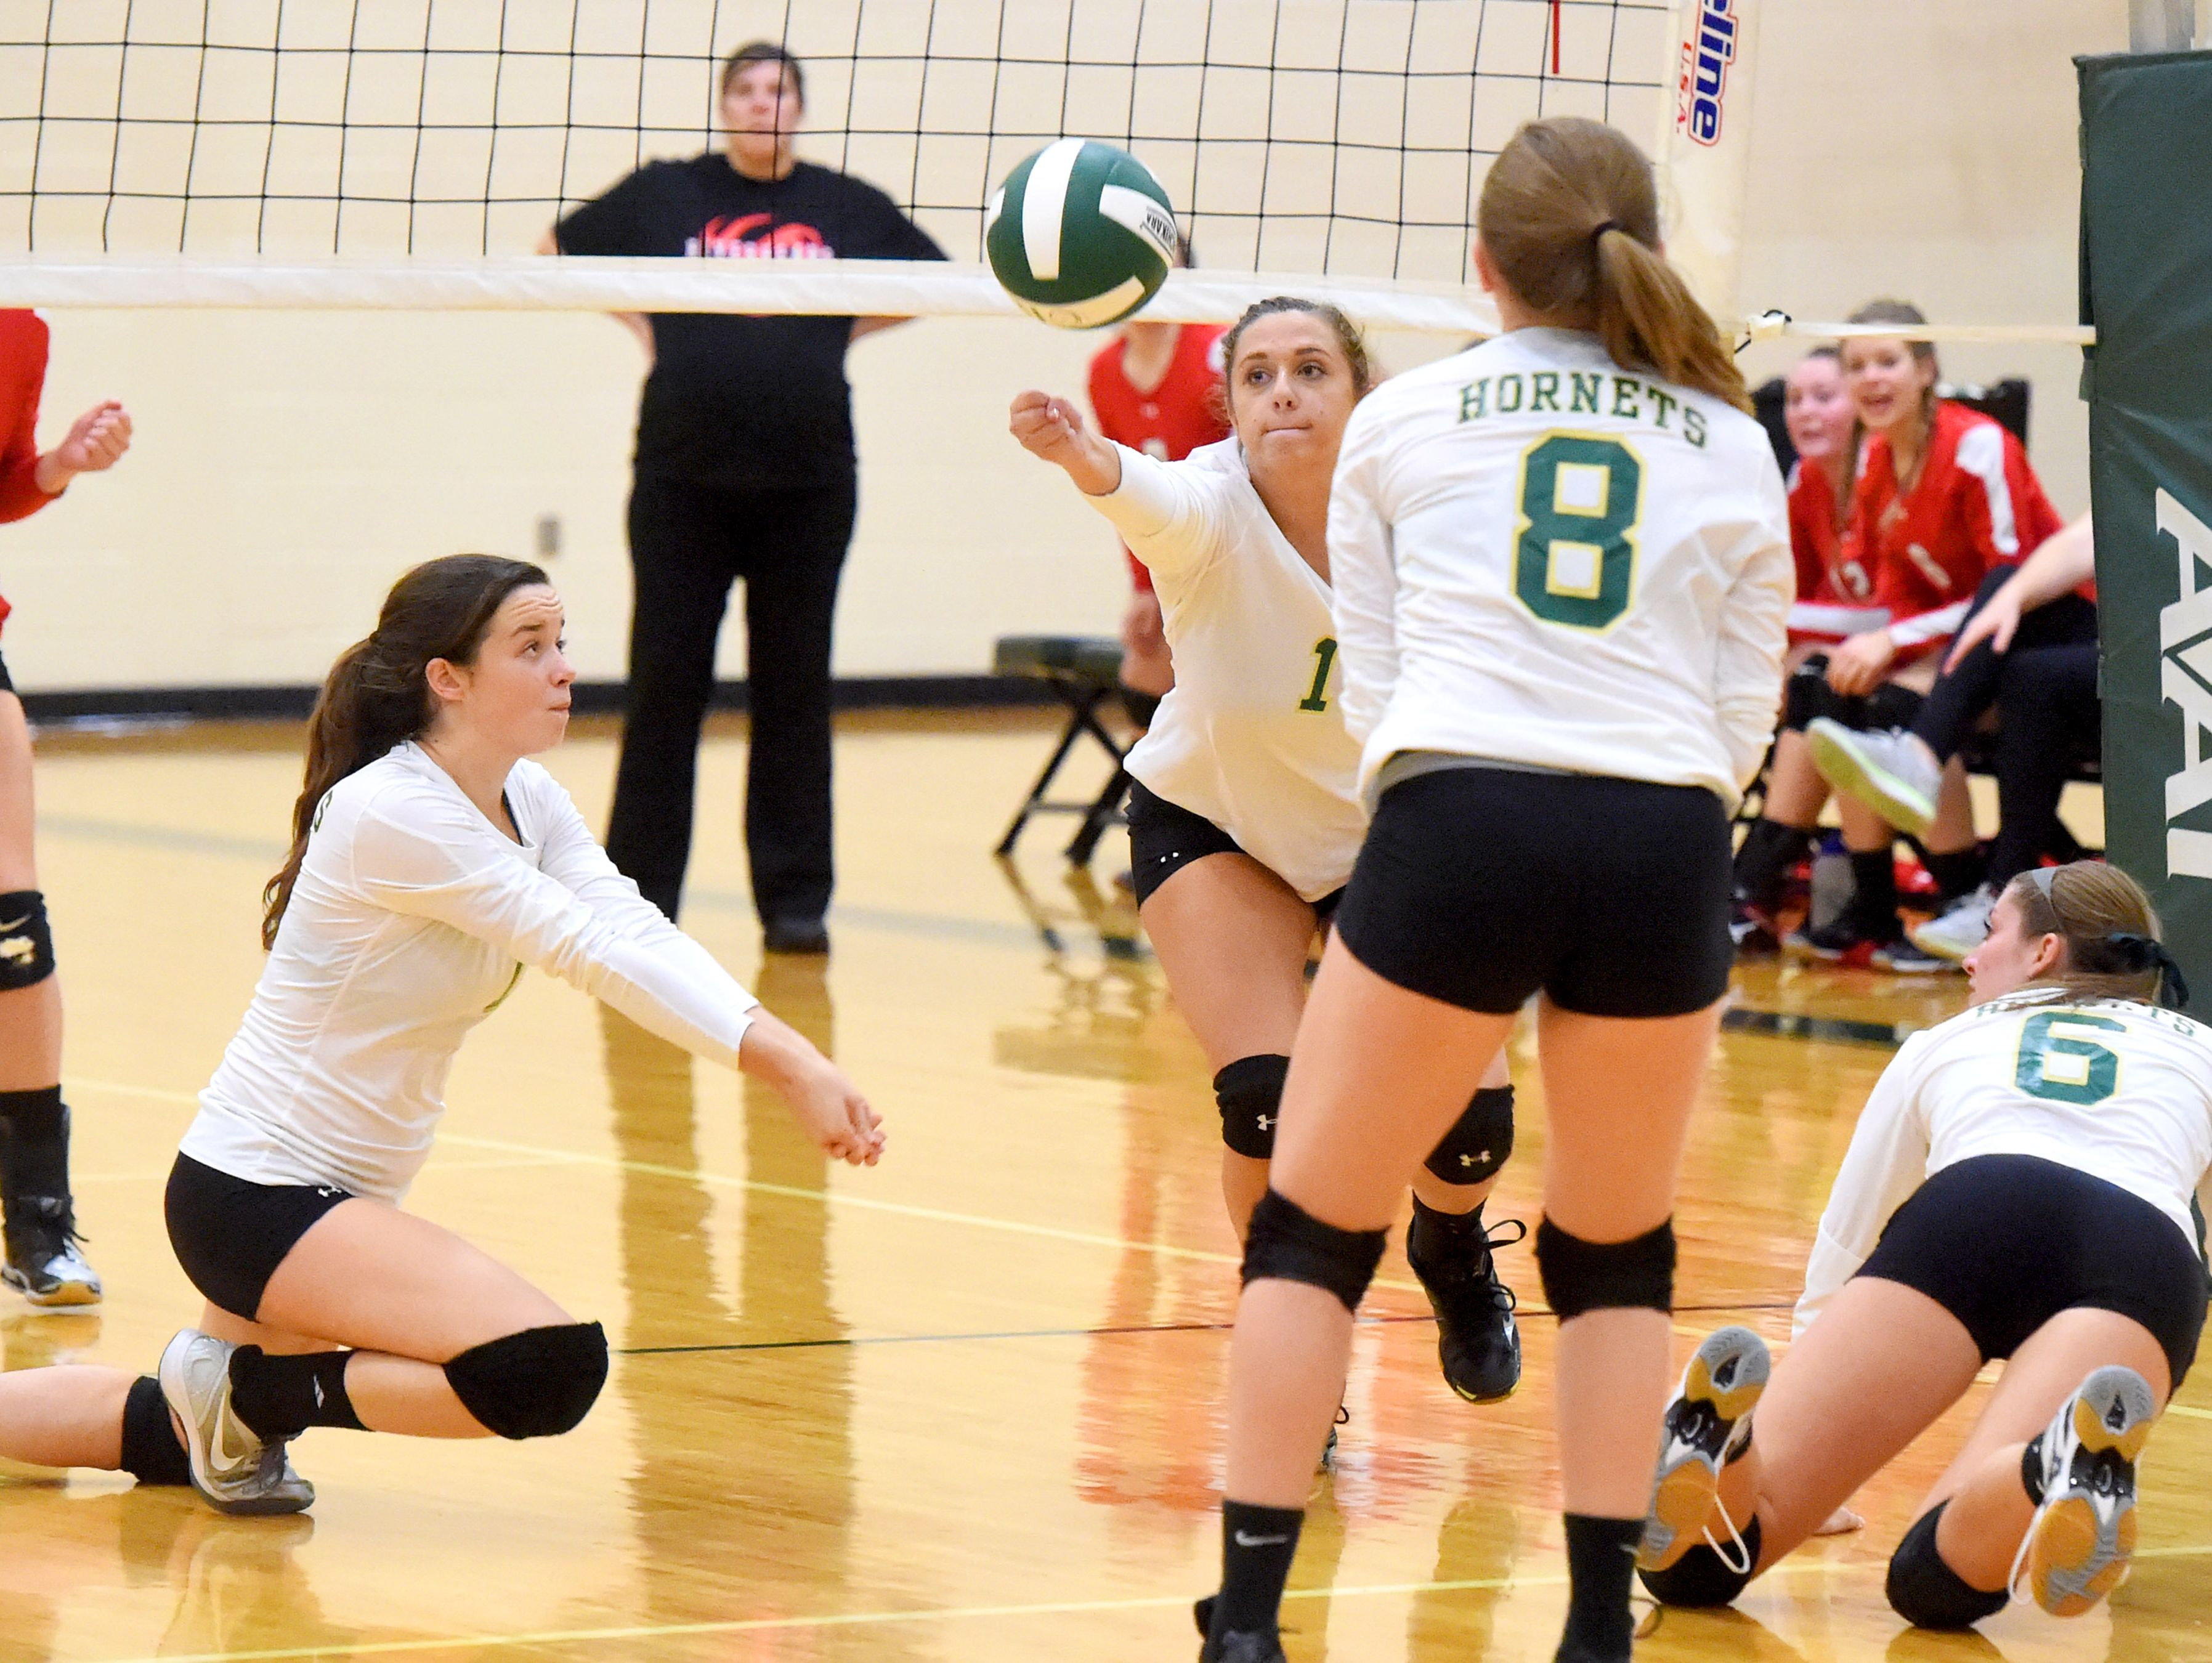 Wilson Memorial's Madison Crist gets to the ball to keep it in play so her team can go on to score and win the first game with teammate Emma Nargi, Grace Carter and Emma Harrison back her up during a volleyball match played in Fishersville on Thursday, Oct. 20, 2016.